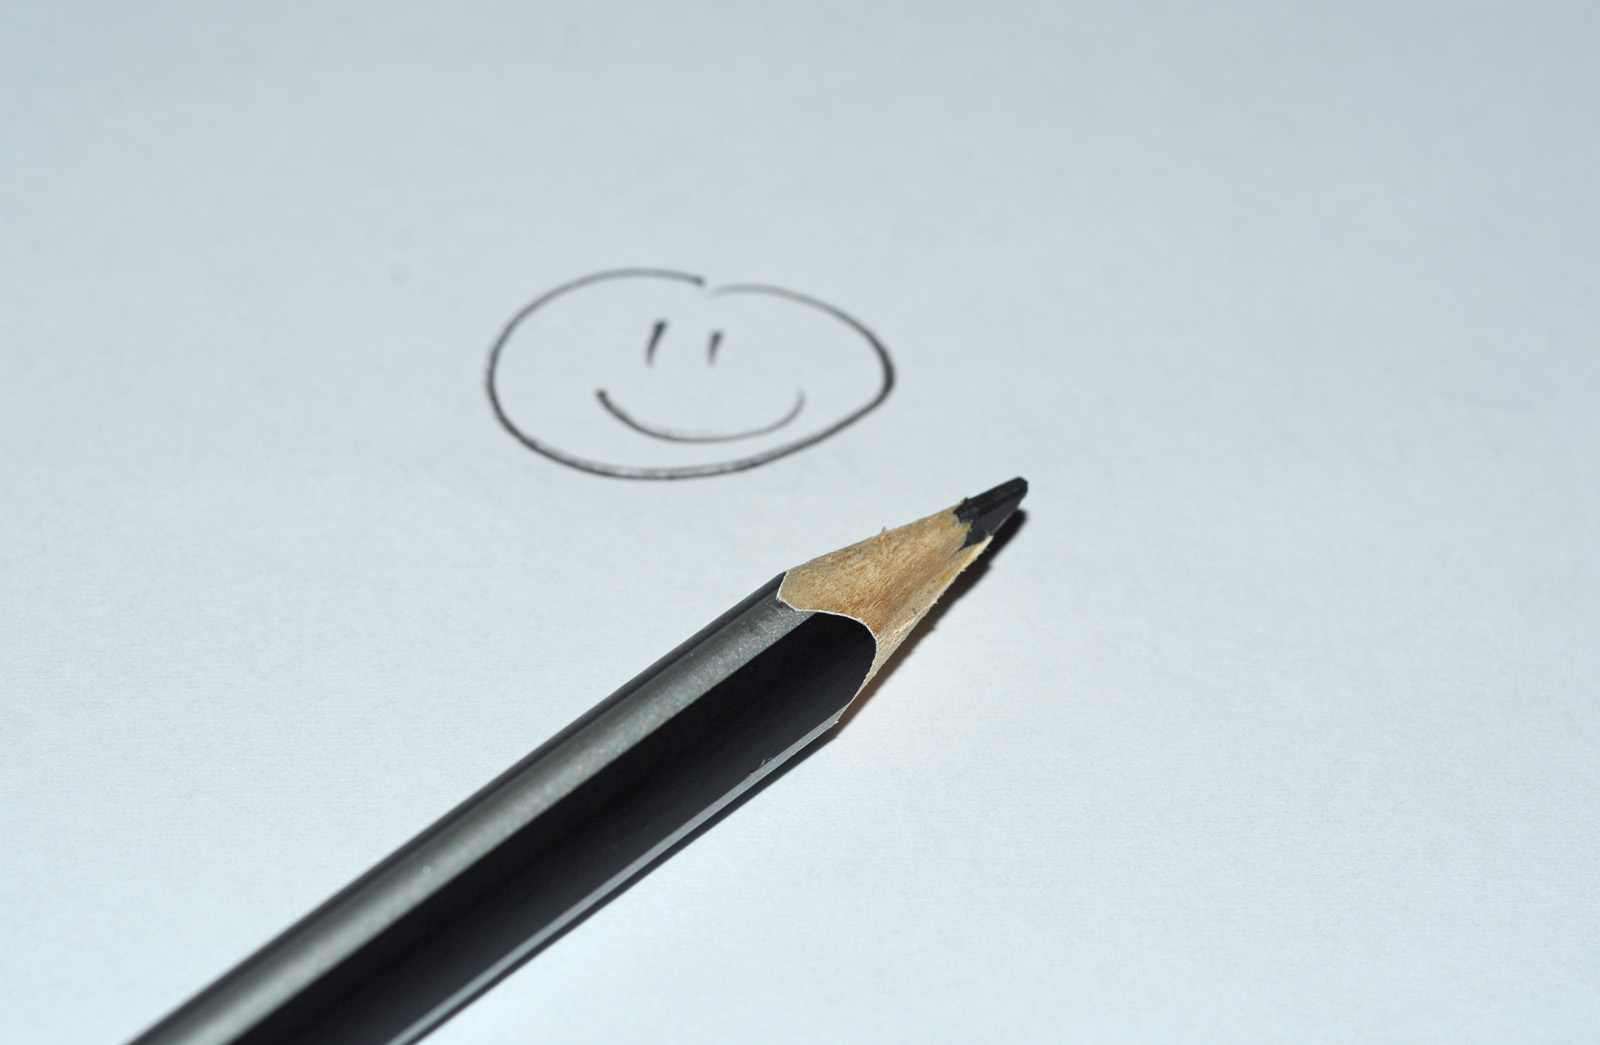 File:Pencil with a smiley face on paper.JPG - Wikimedia Commons